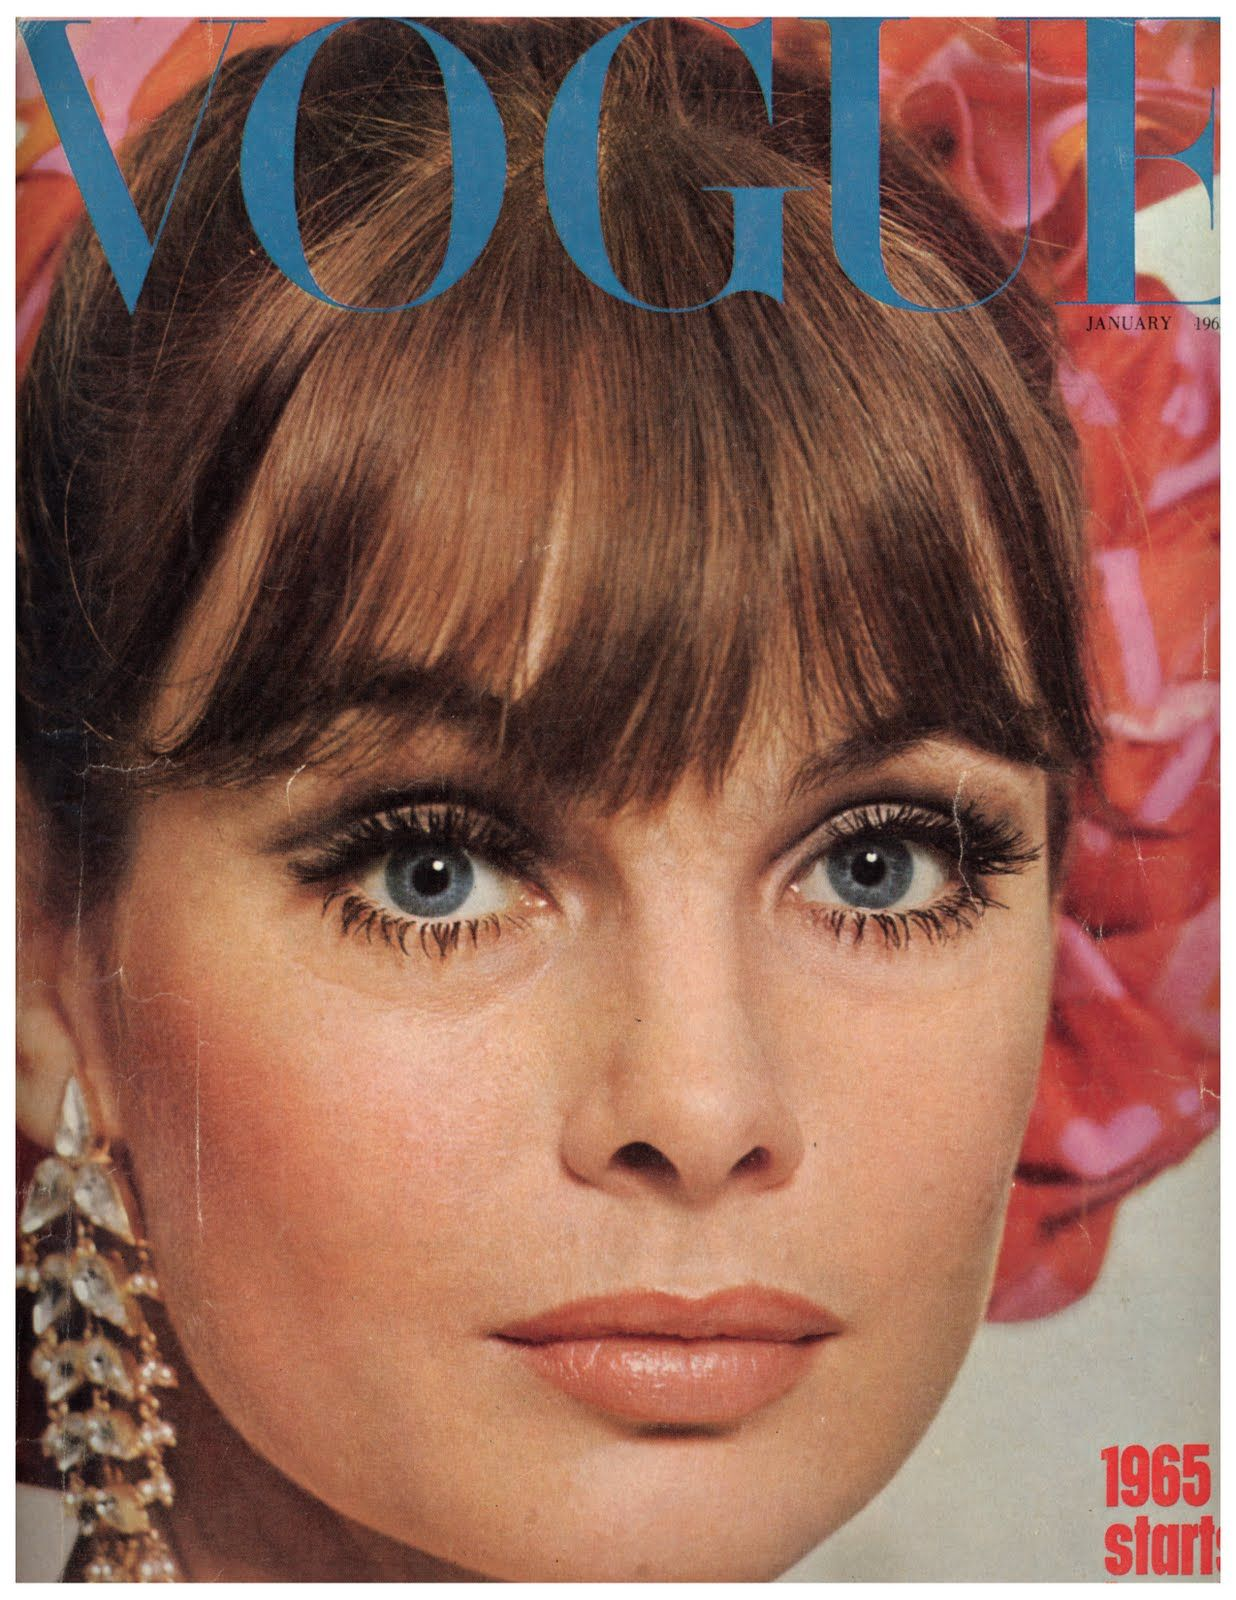 The Shrimp, Face of the century: January 1st 1965 - UK Vogue